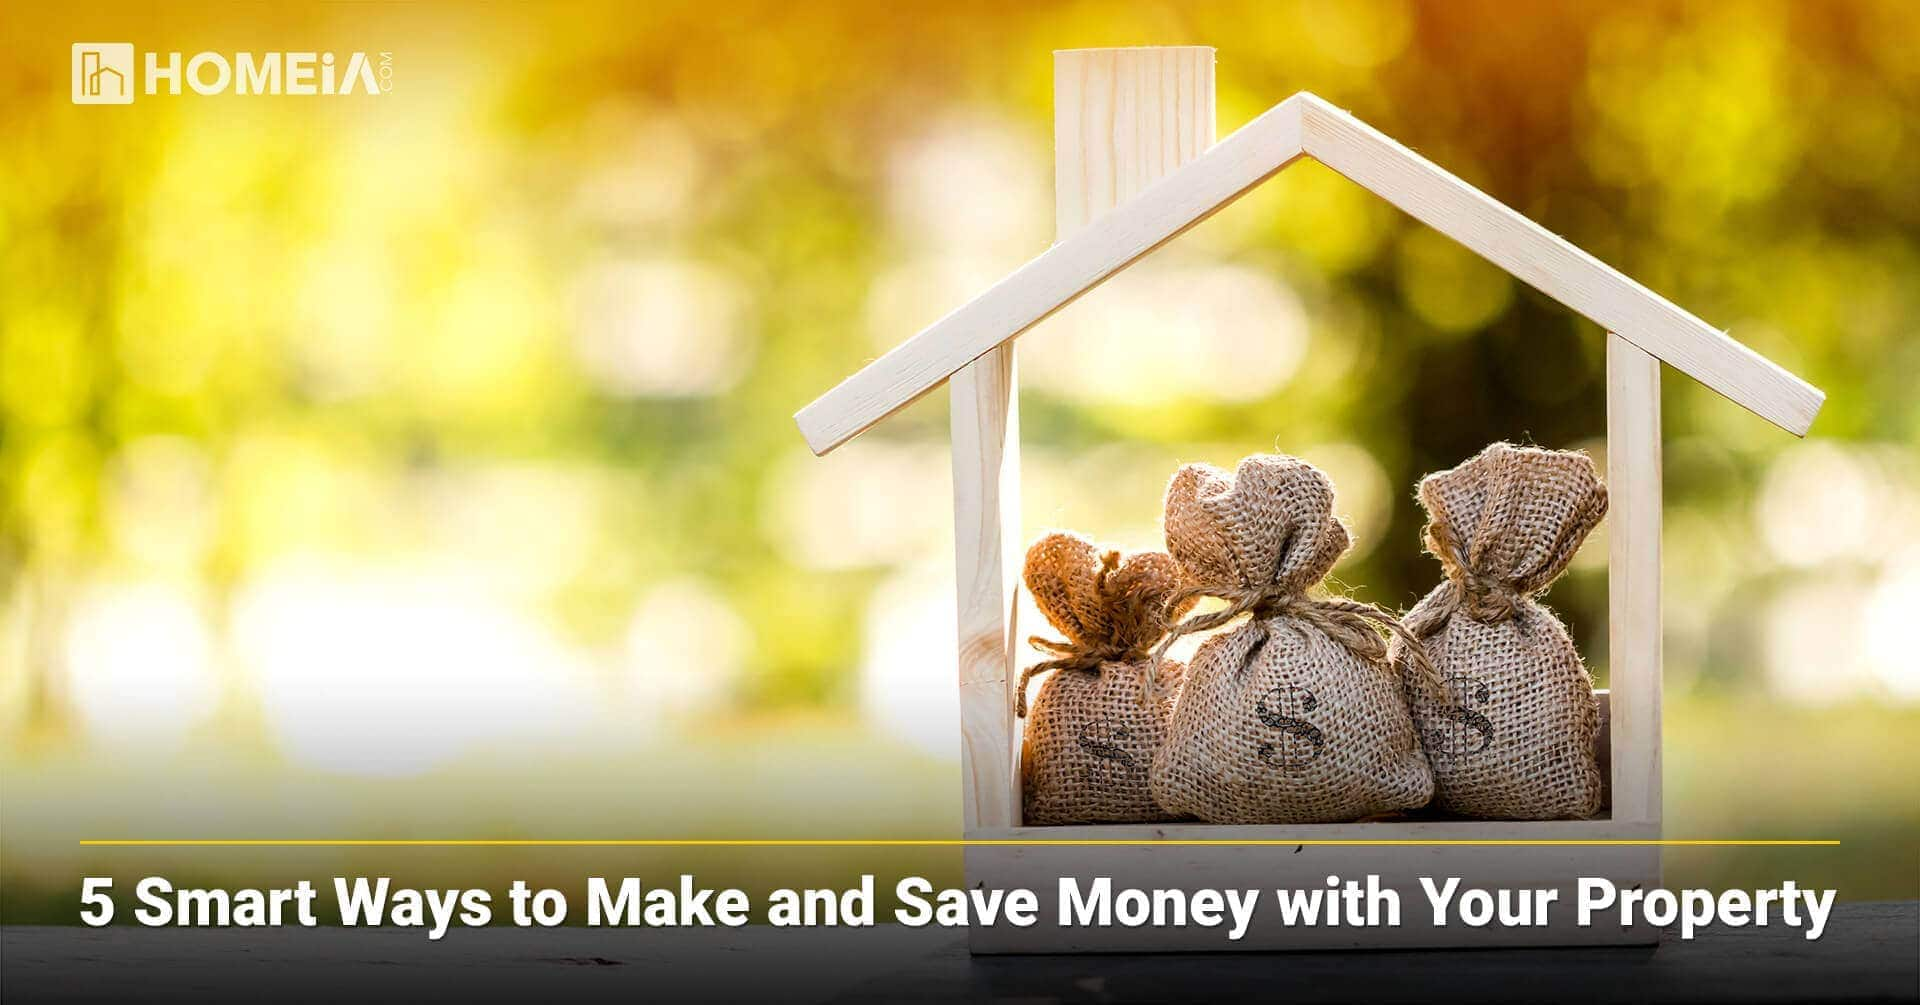 5 Smart Ways to Make and Save Money with Your Property